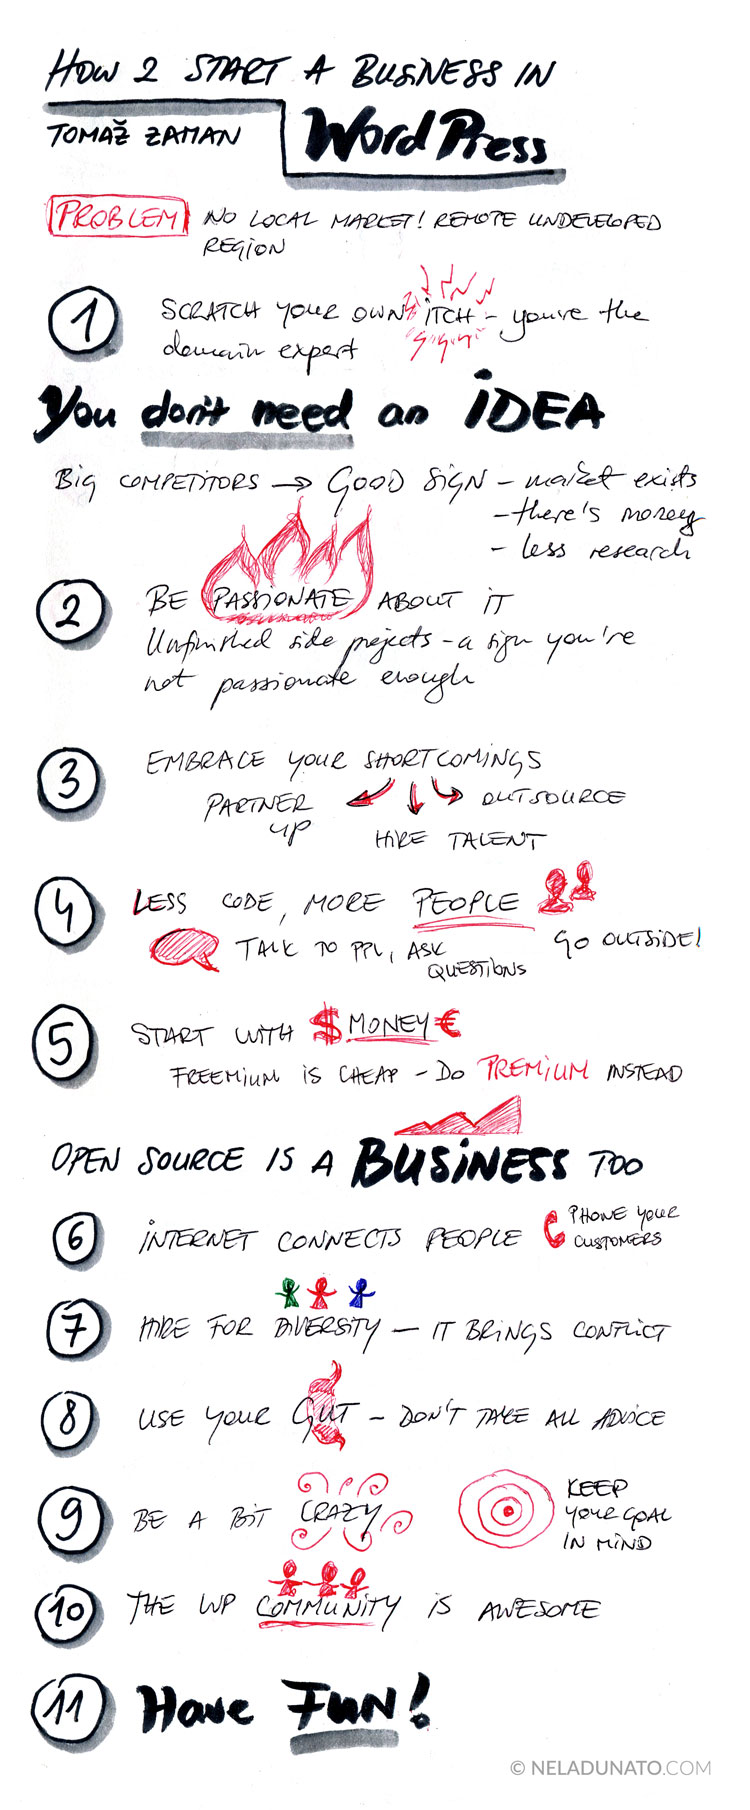 How to start a business in WordPress - conference talk sketchnotes